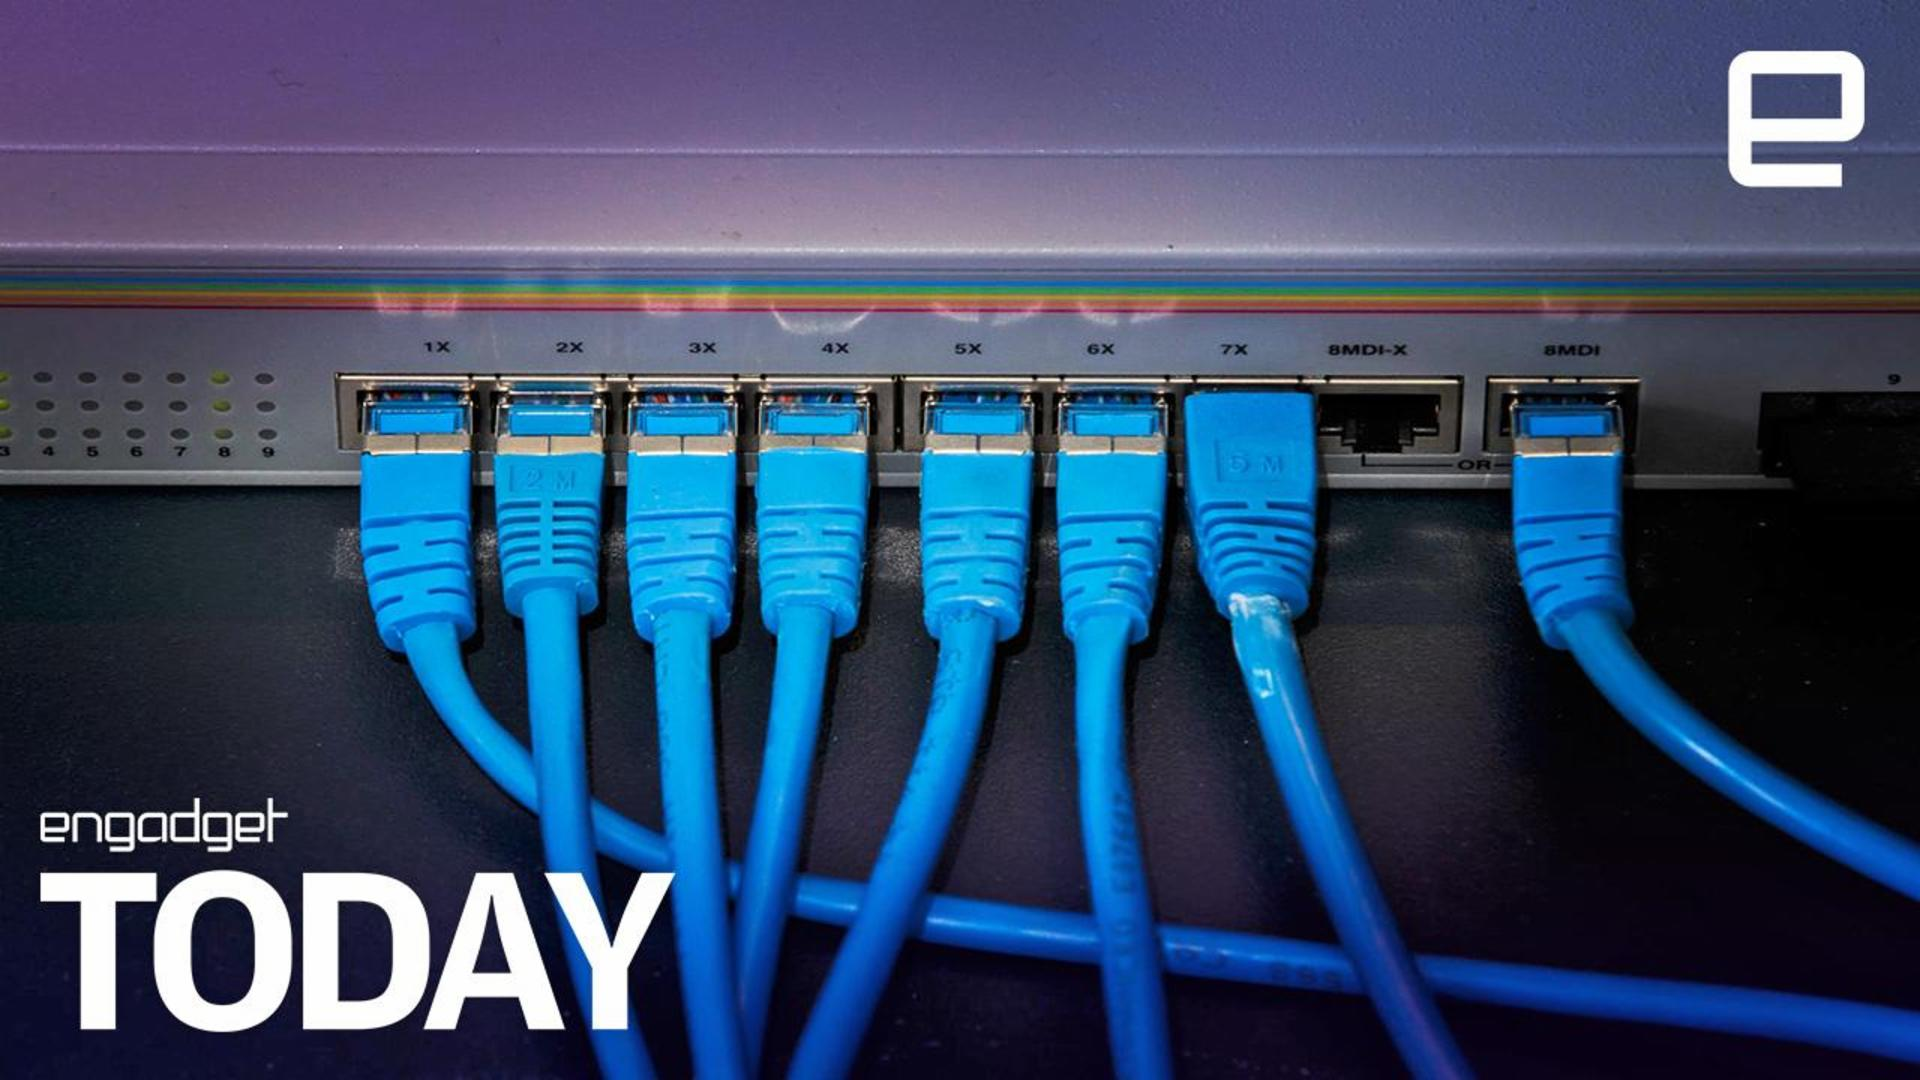 Sophisticated malware attacks through routers